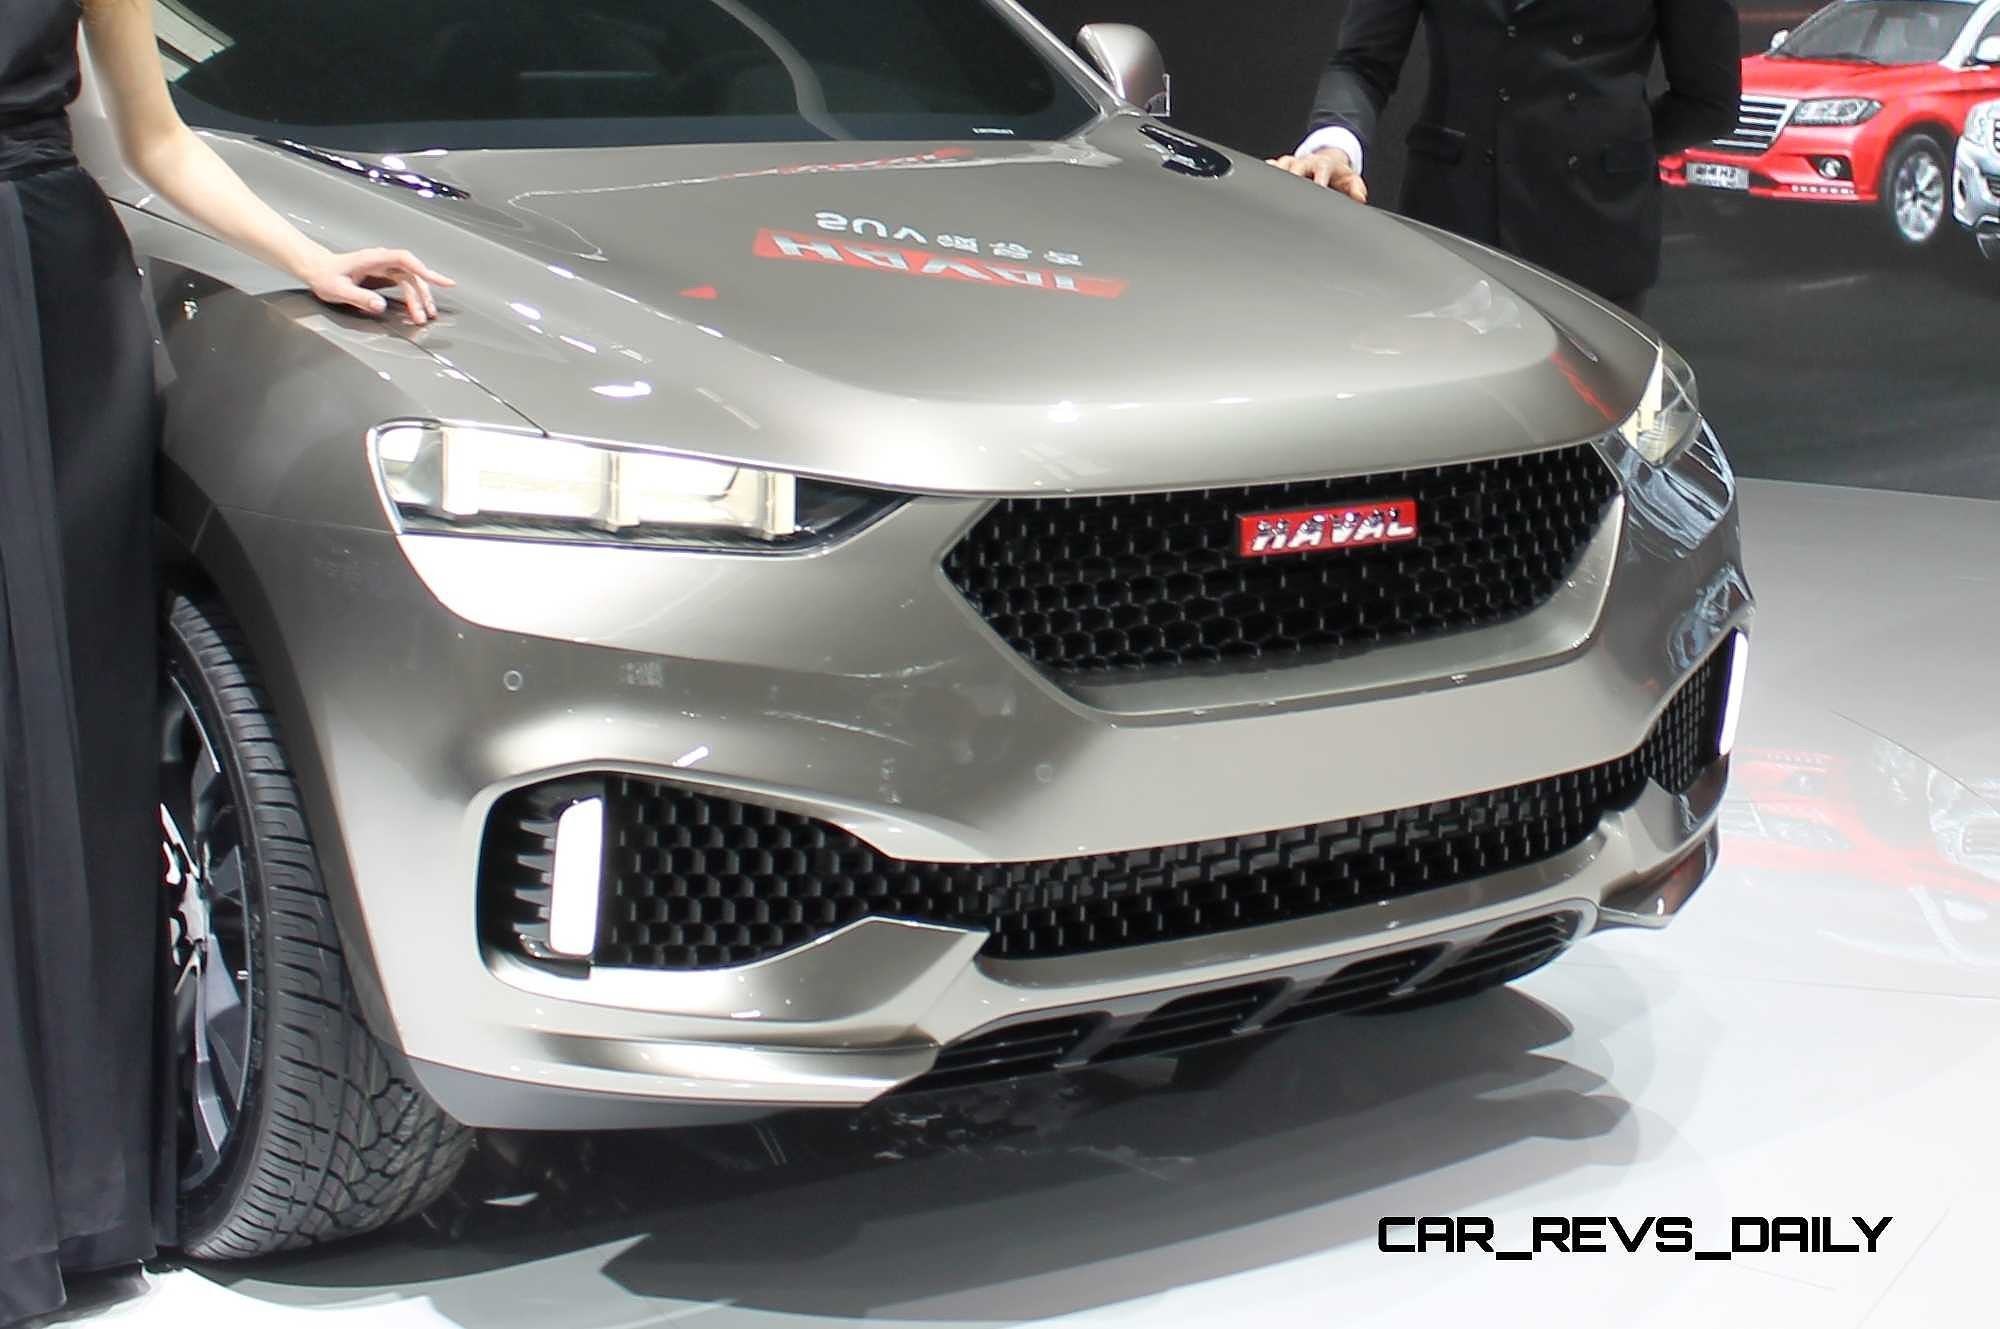 Toyota Suv Names >> Chinese-Market SUV and Crossover Concepts - Acura vs. MG vs. Chery vs. Haval vs. Changan